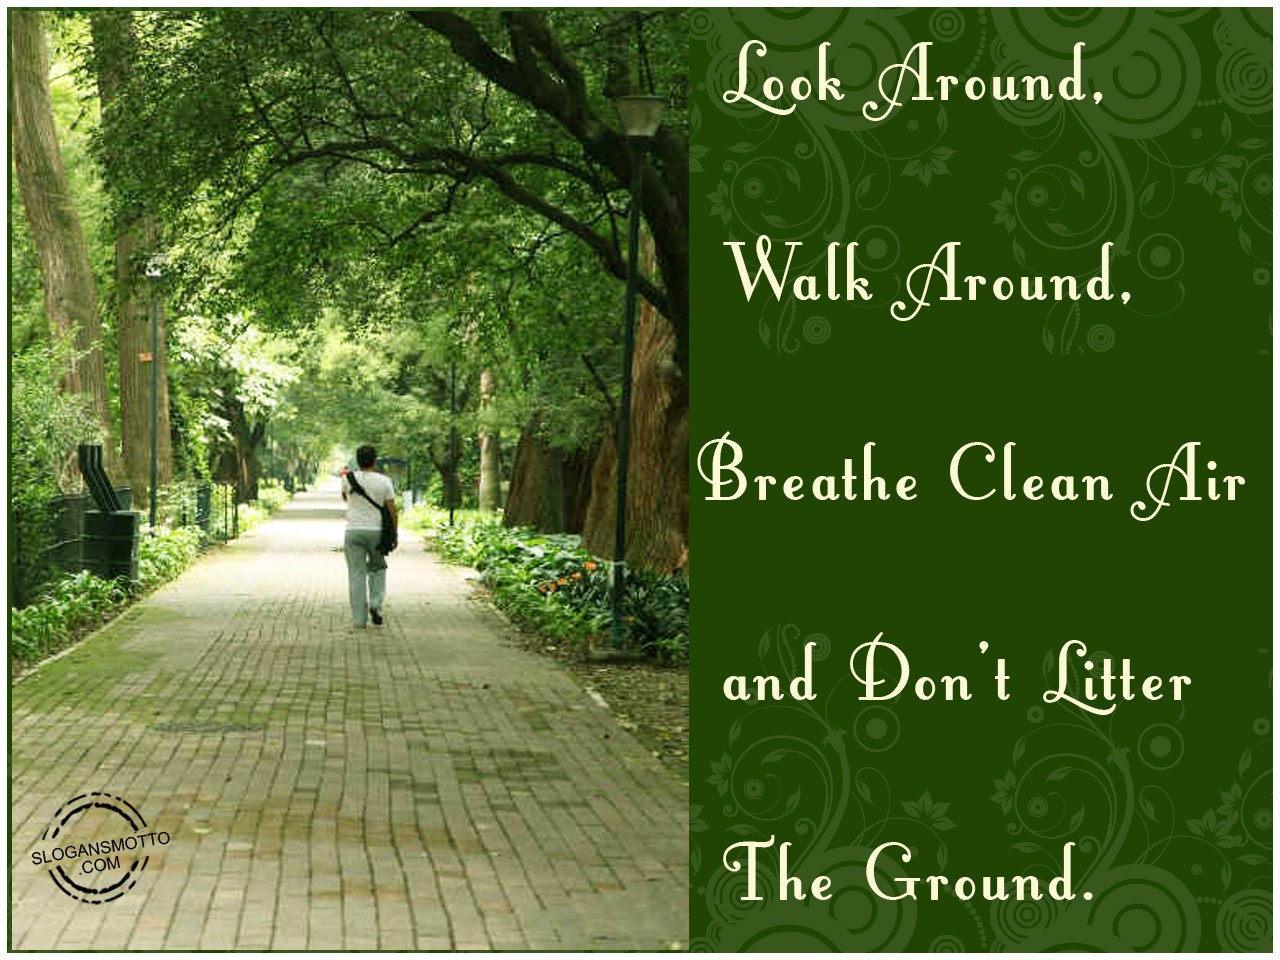 https://www.slogansmotto.com/wp-content/uploads/Look-around-walk-around-breathe-clean-air-and-don%E2%80%99t-litter-the-ground.jpg